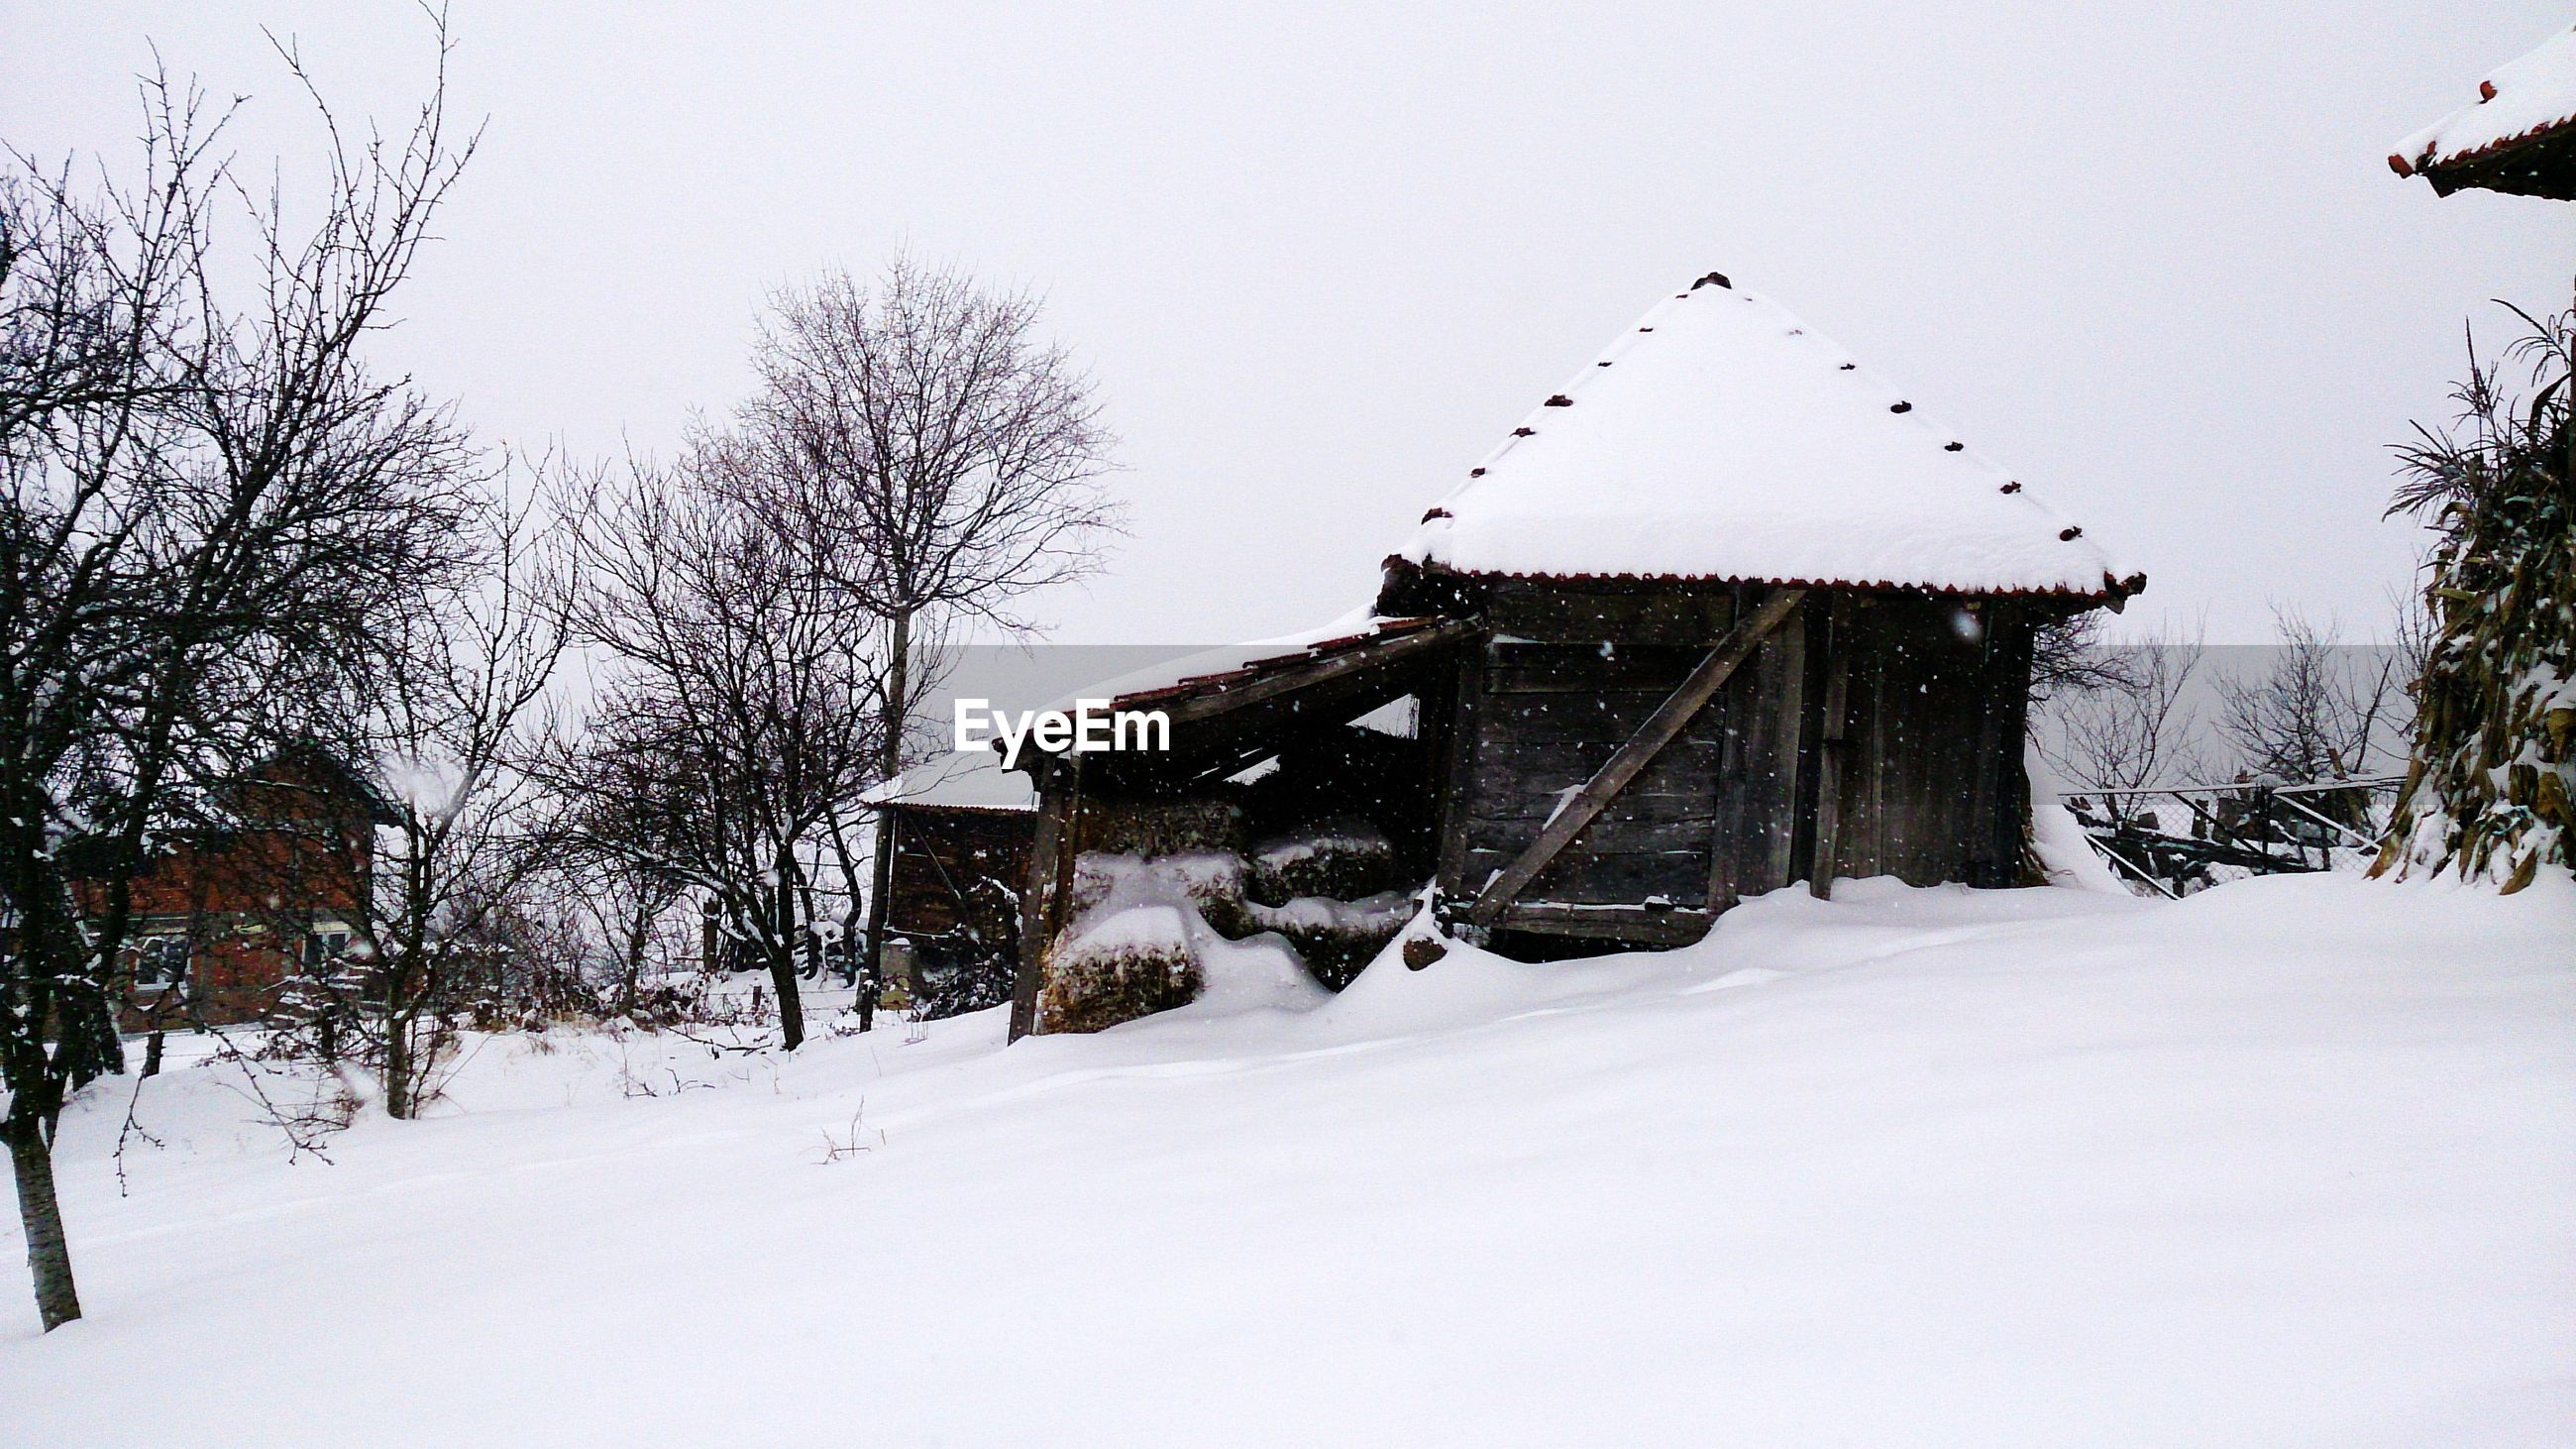 Built structures on snow covered landscape